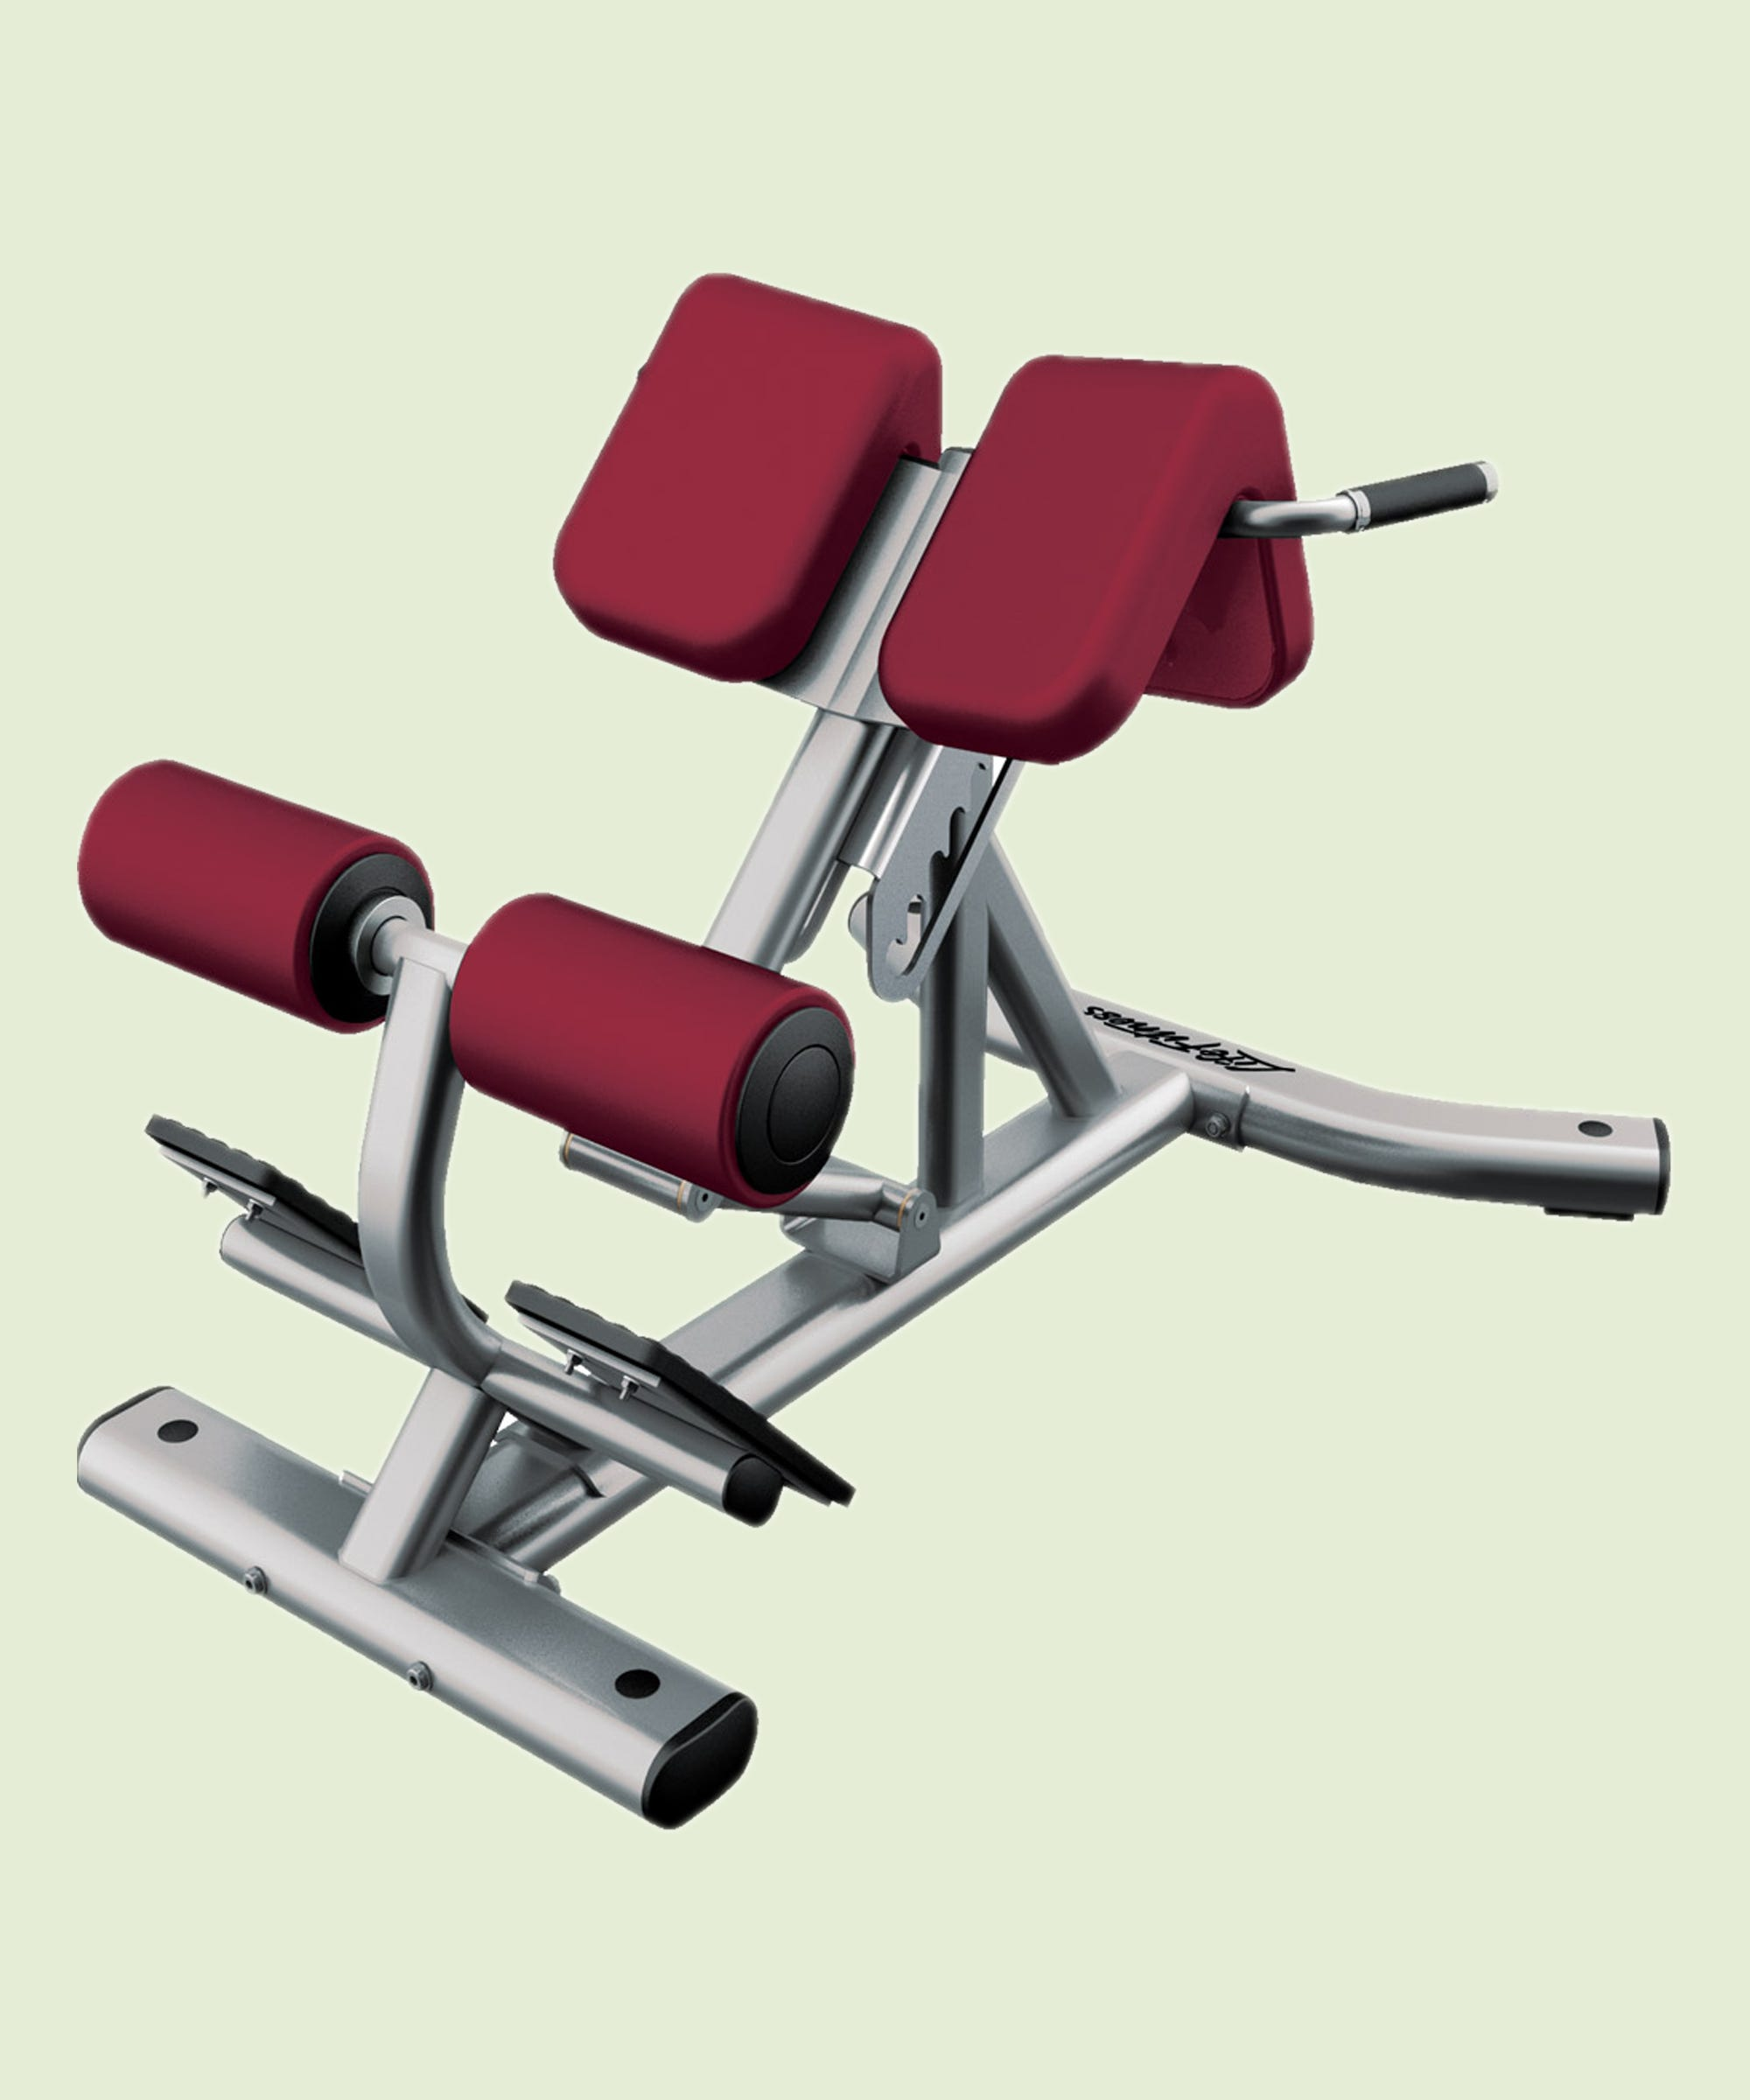 half off d54a6 1f17f Gym Equipment Guide For Women Using Exercise Machine